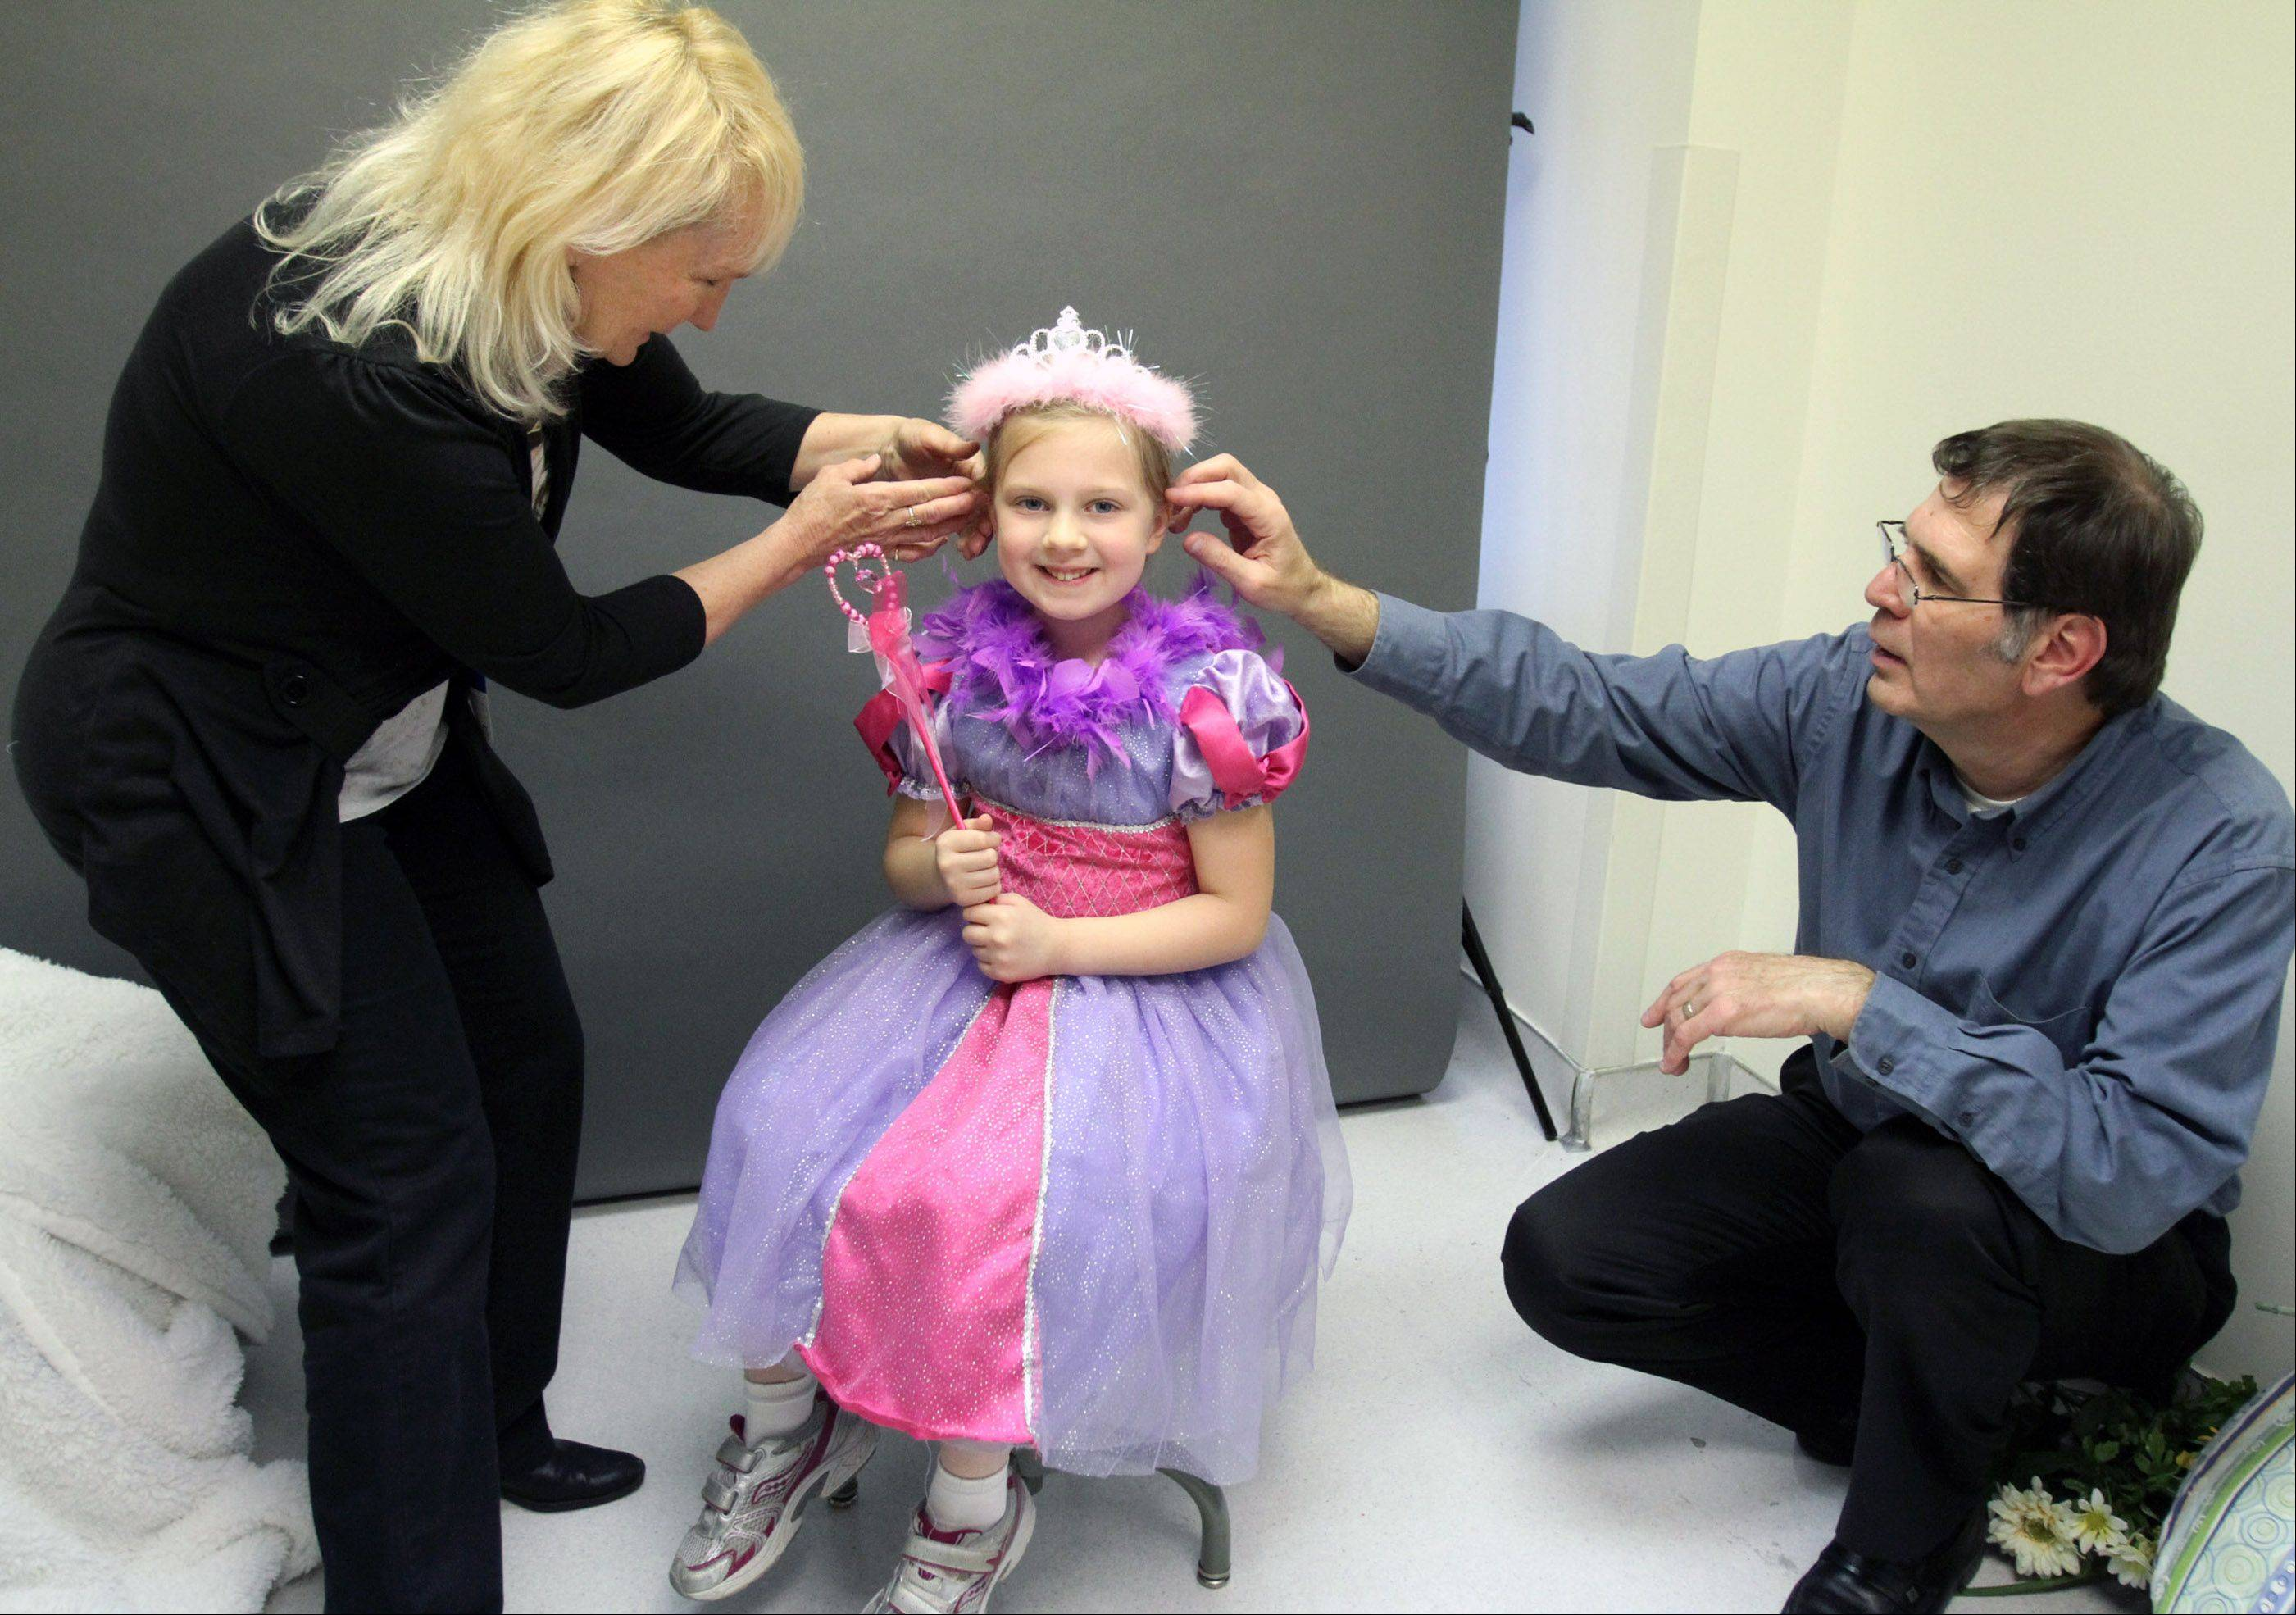 Sharon and Ray adjust 6-year-old Brooke Ames's hair before daughter Jennifer takes a portrait at Children's Memorial Hospital. Brooke's brother Drew, 4, is receiving treatment at the hospital. The Weigands offer to take portraits of siblings and parents of children facing cancer. The Ames family is from Wheaton.